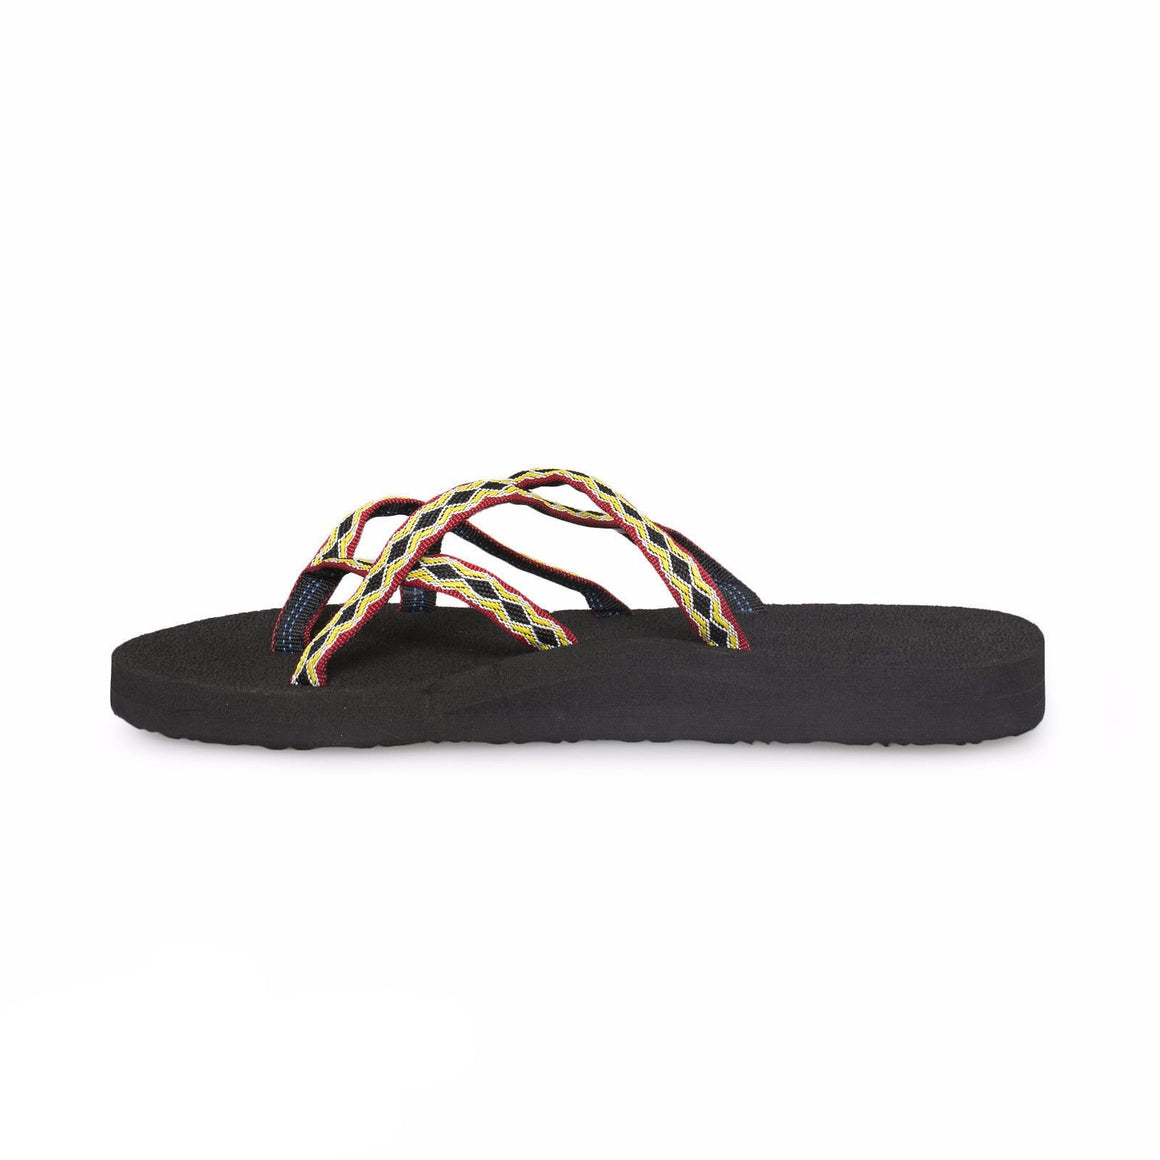 Teva Olowahu Black / Red / Yellow Flip Flops